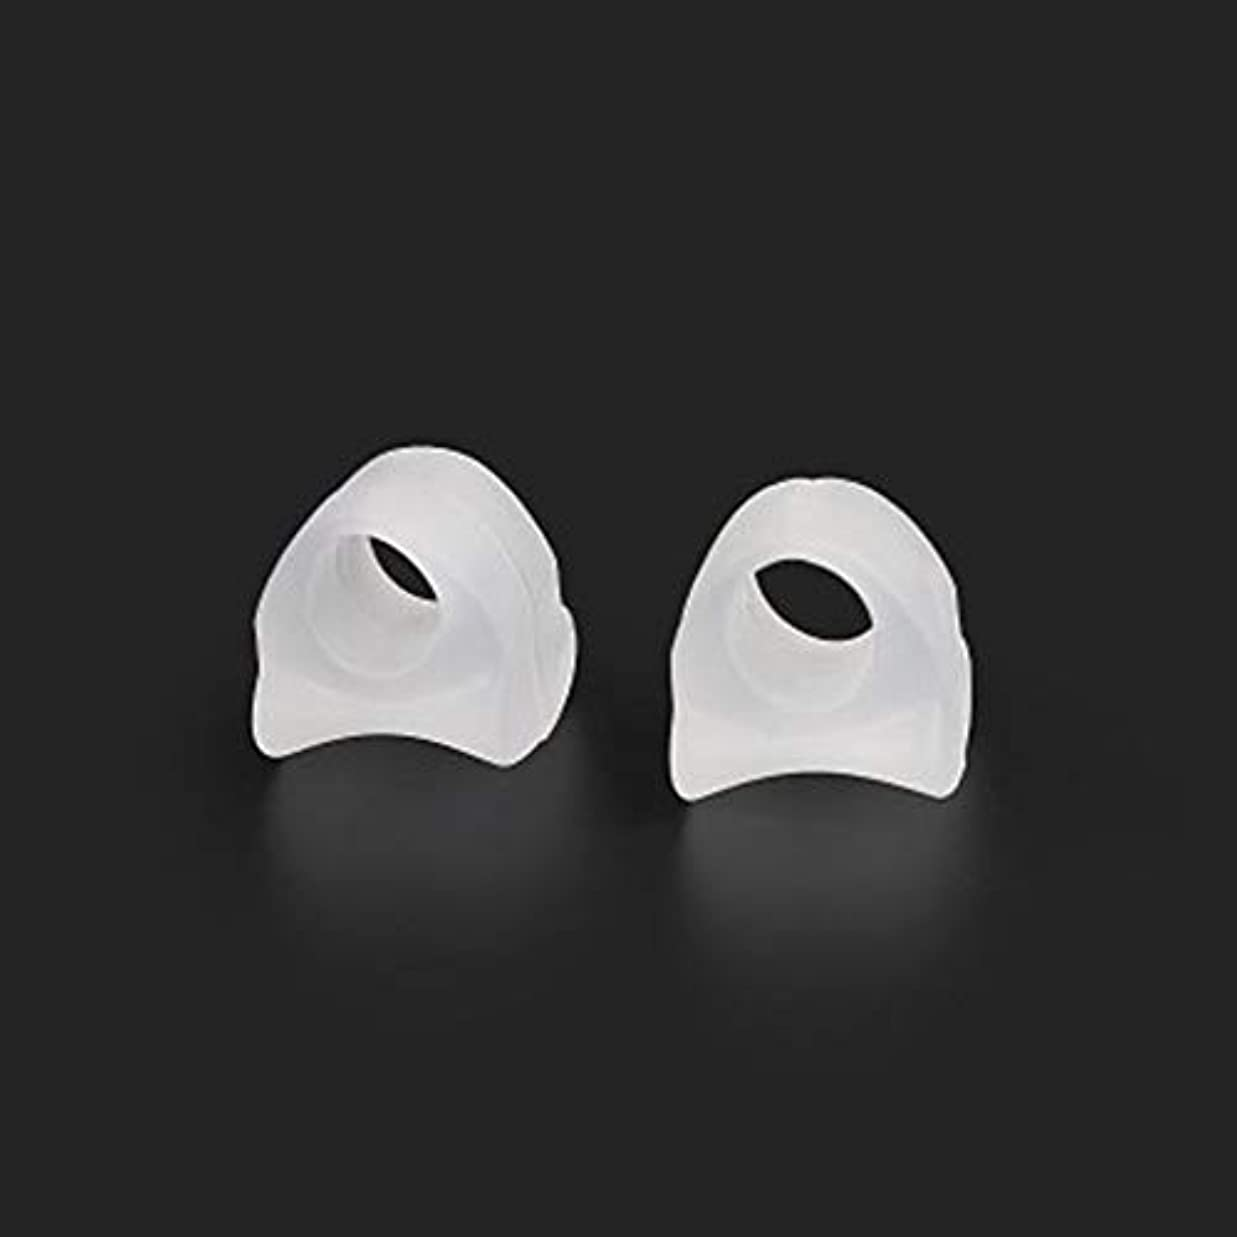 ハリウッド学習者道徳教育AAcreatspace Ring Shape Gel Toe Separator Toe Bunion Hallux Valgus Toe Stretchers for Men and Womenすぐに痛みを軽減するイージーウェア